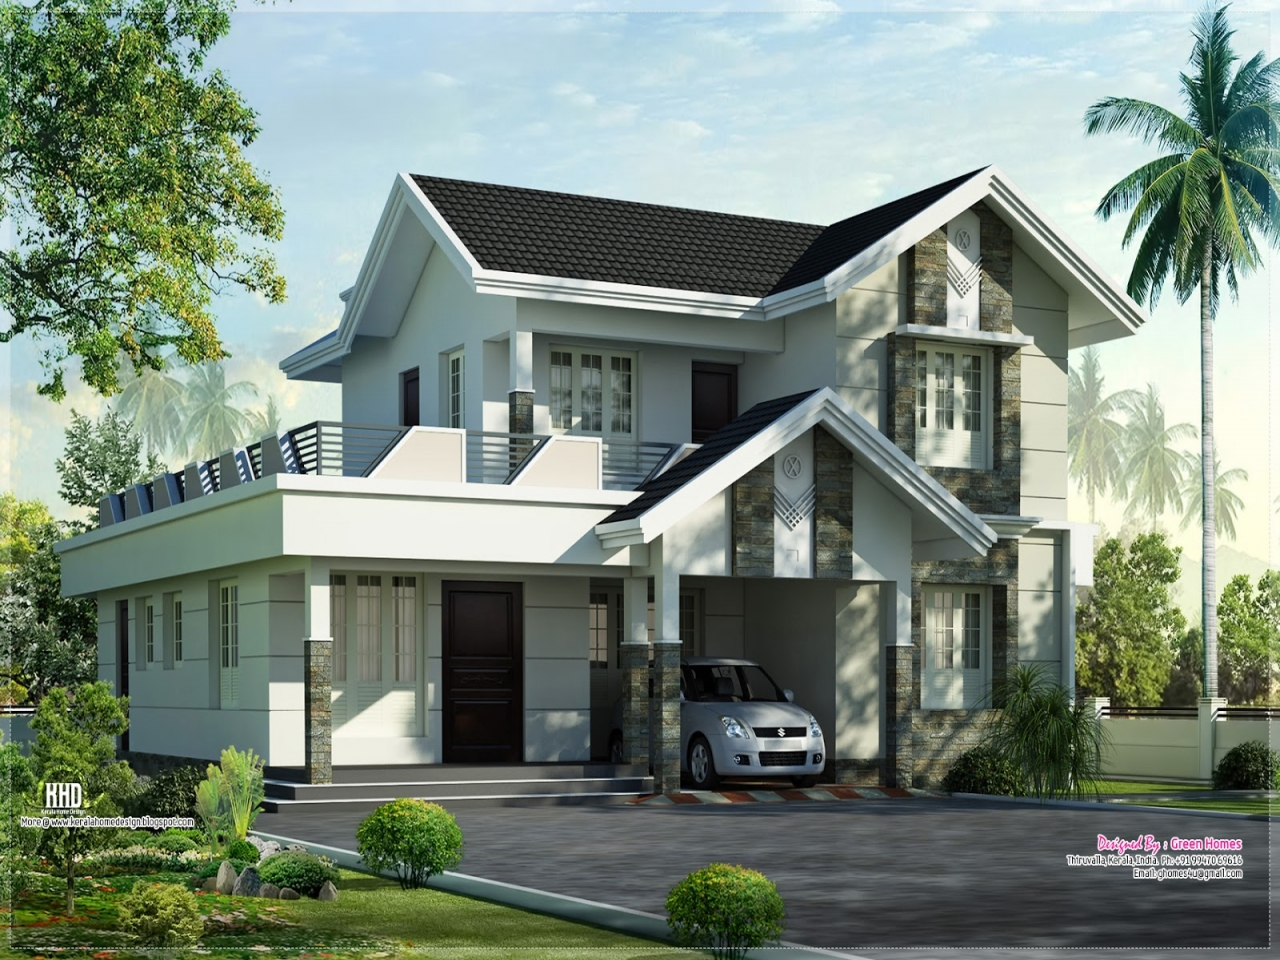 Nice house design nice house design drawing nice house for Home design drawing